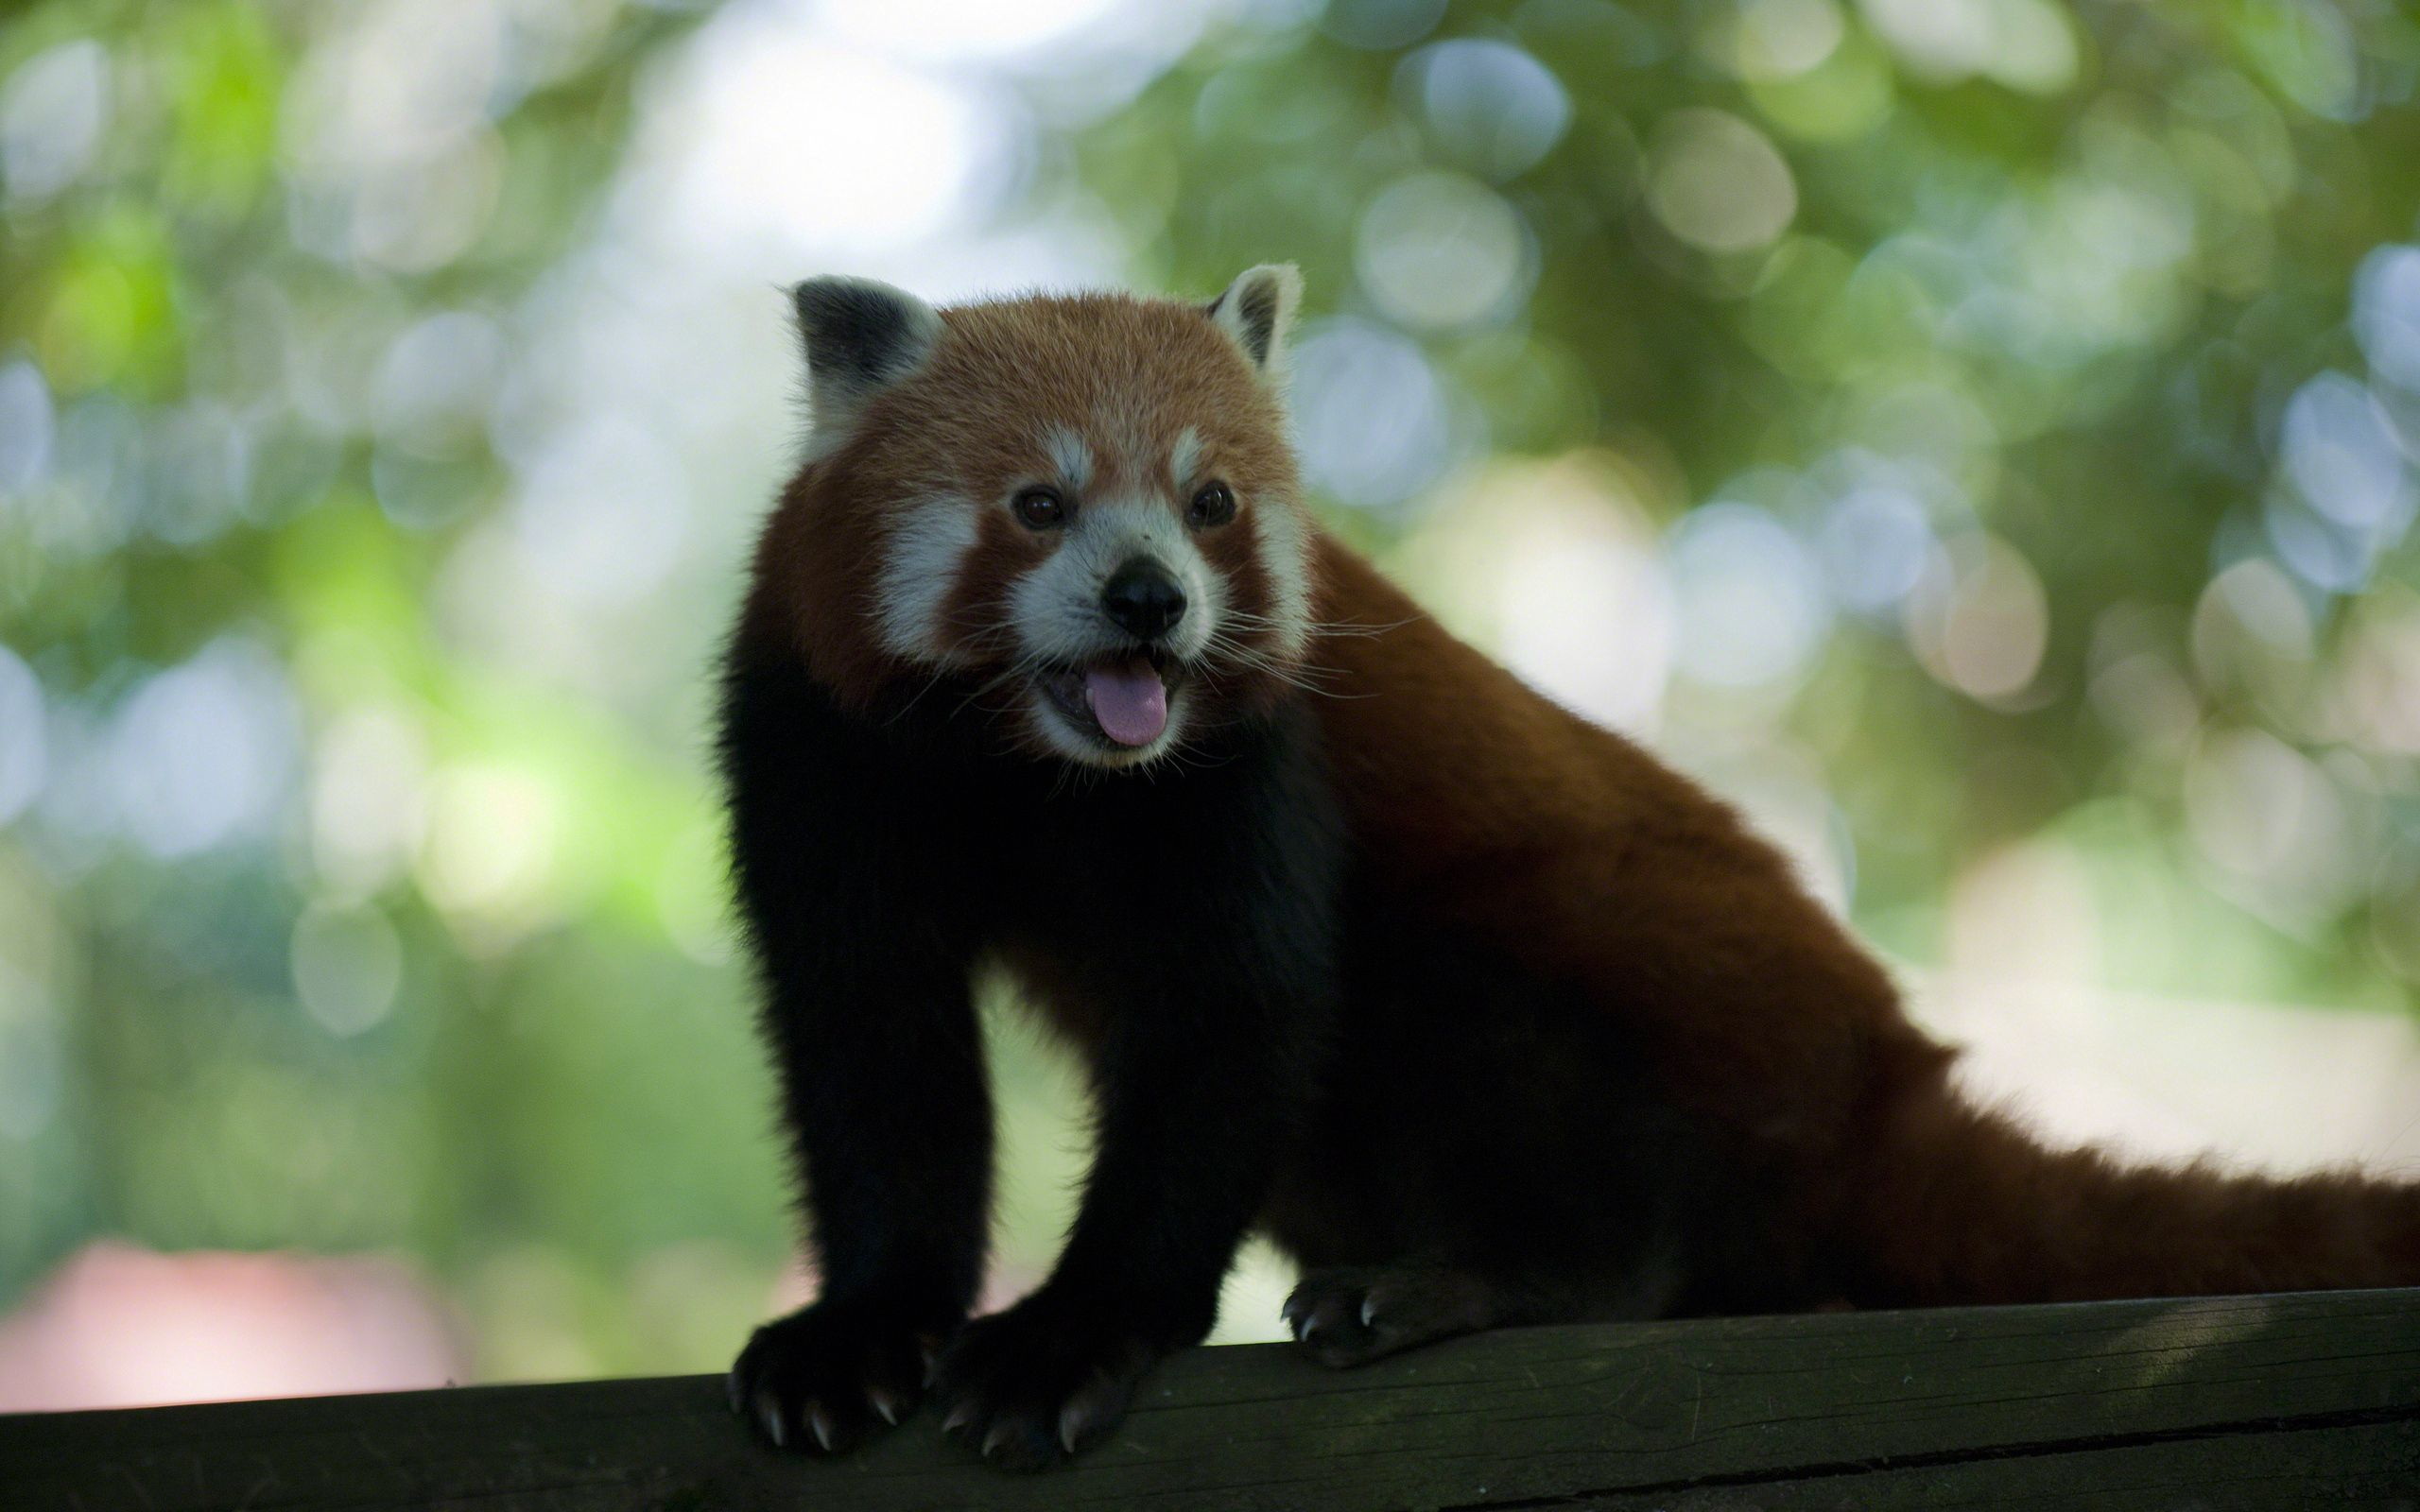 117475 download wallpaper Animals, Ears, Tail, Claws, Panda, Fur, Mustache, Moustache, Language, Tongue screensavers and pictures for free